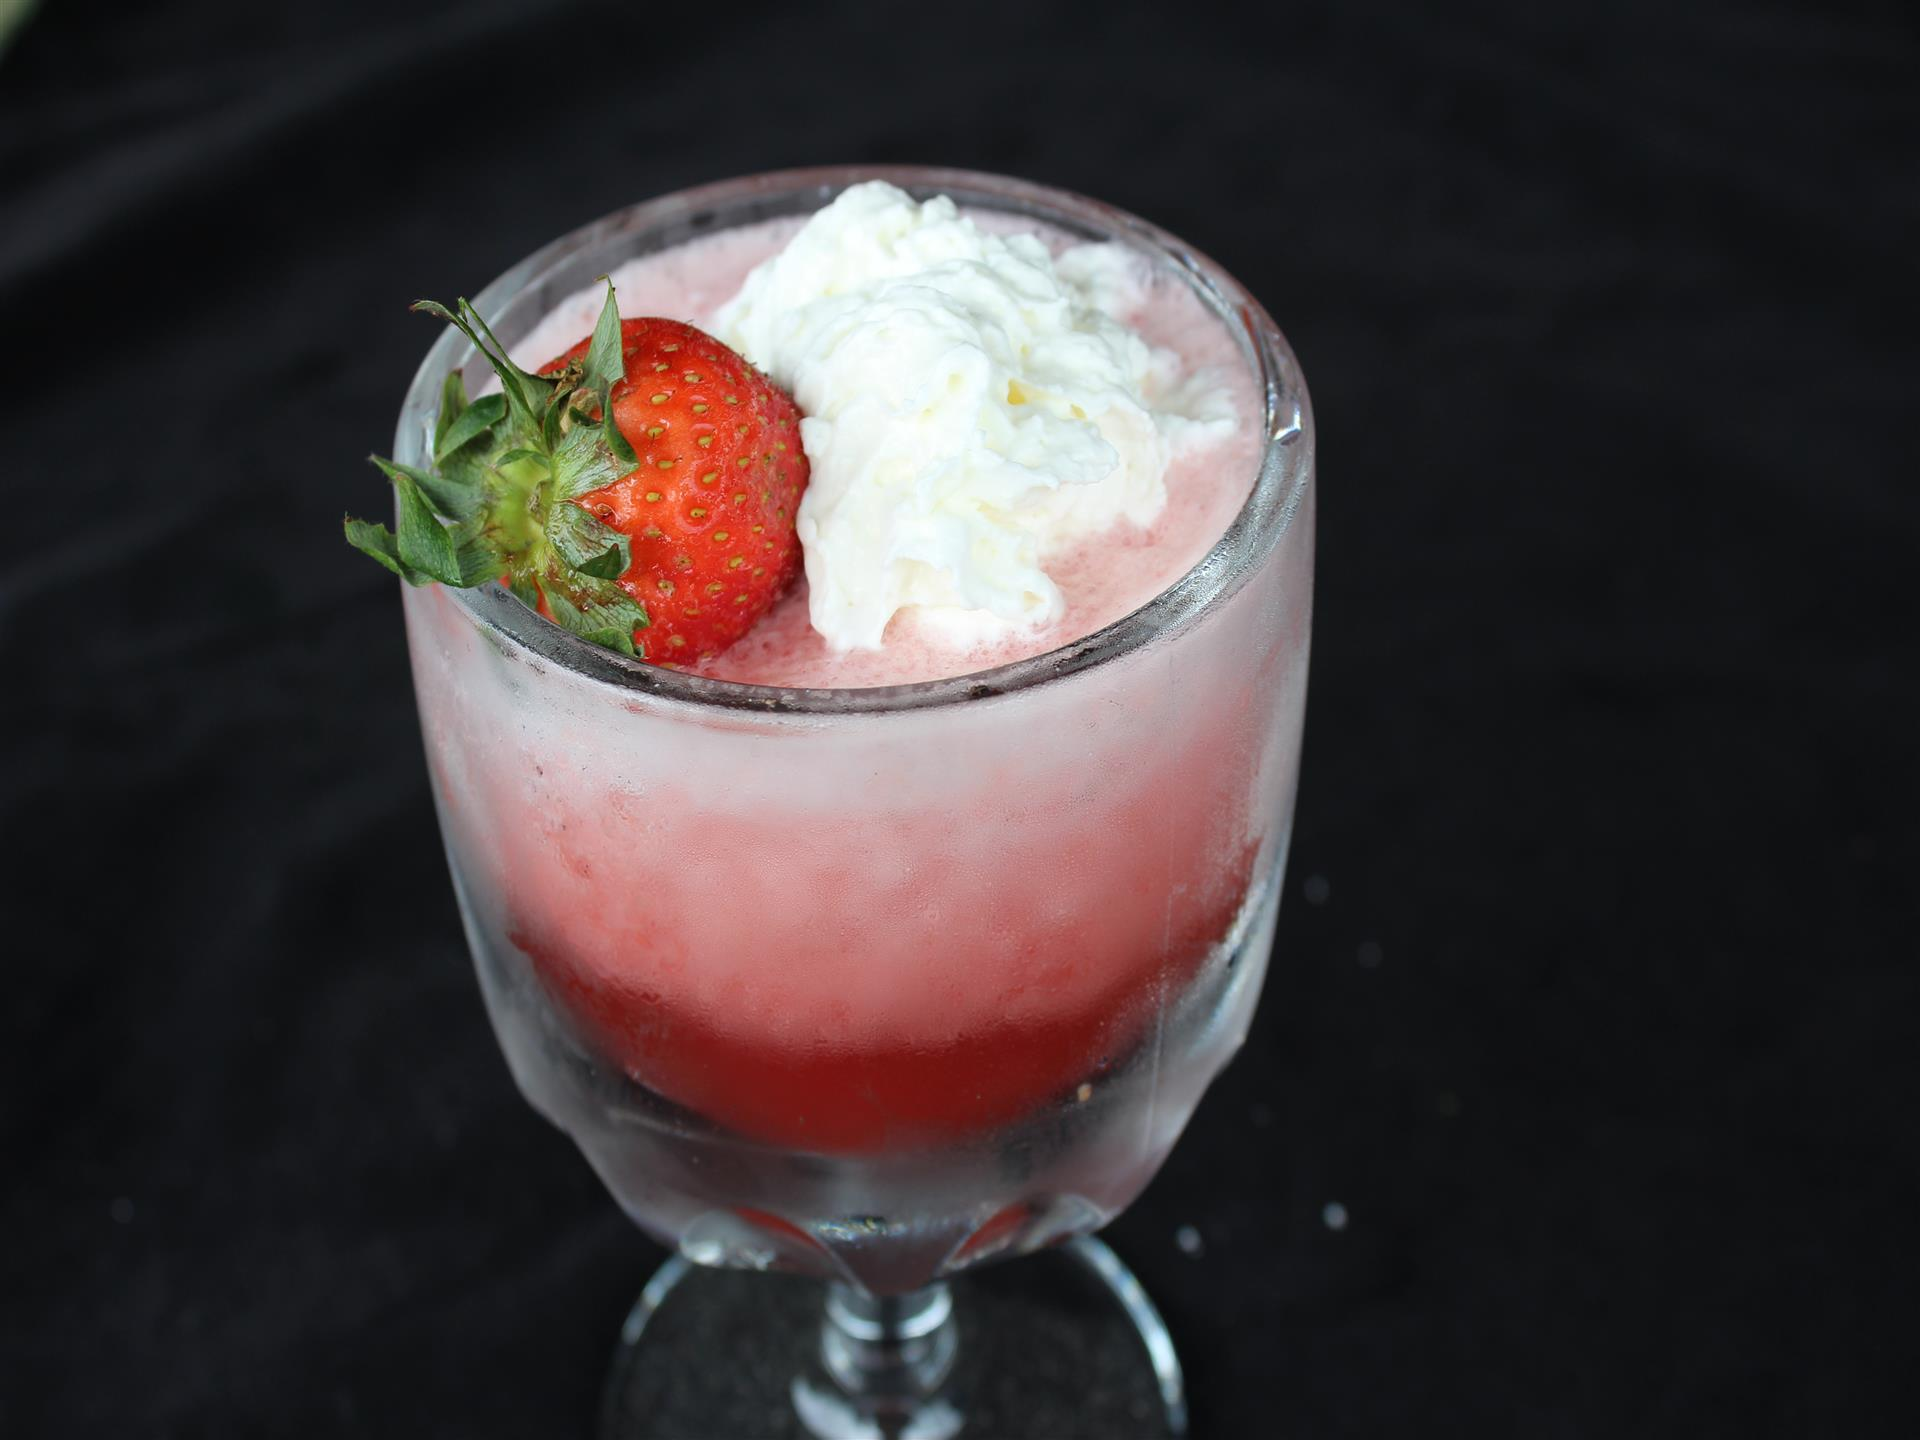 strawberry daiquiri topped with whipped cream